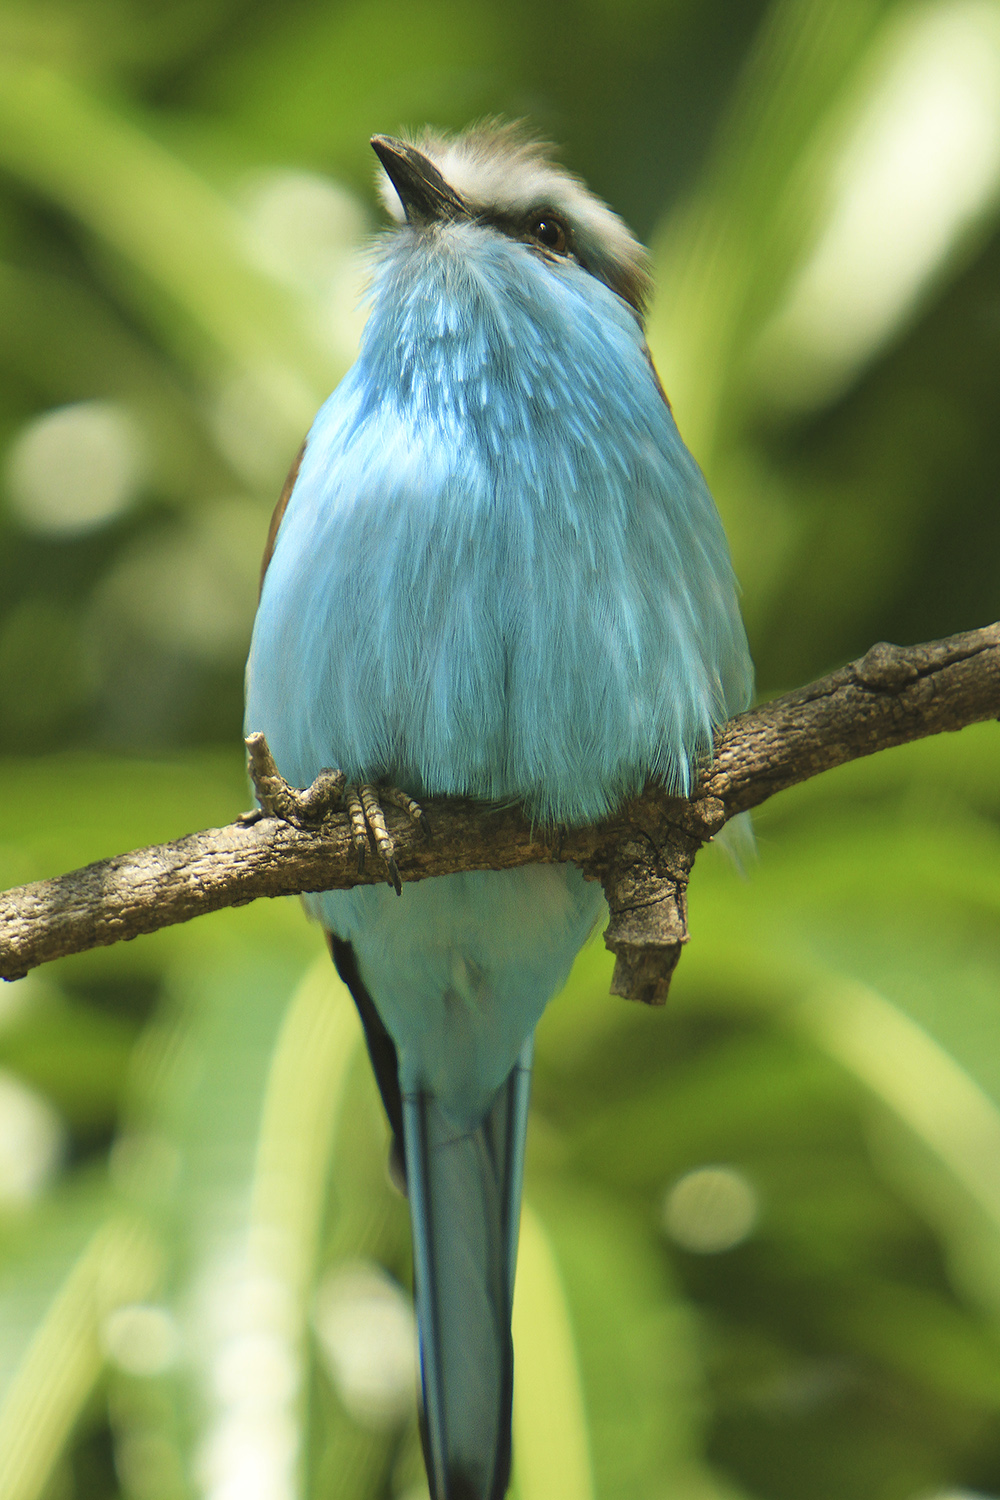 Beautiful Blue Breasted Bird found in tropics.